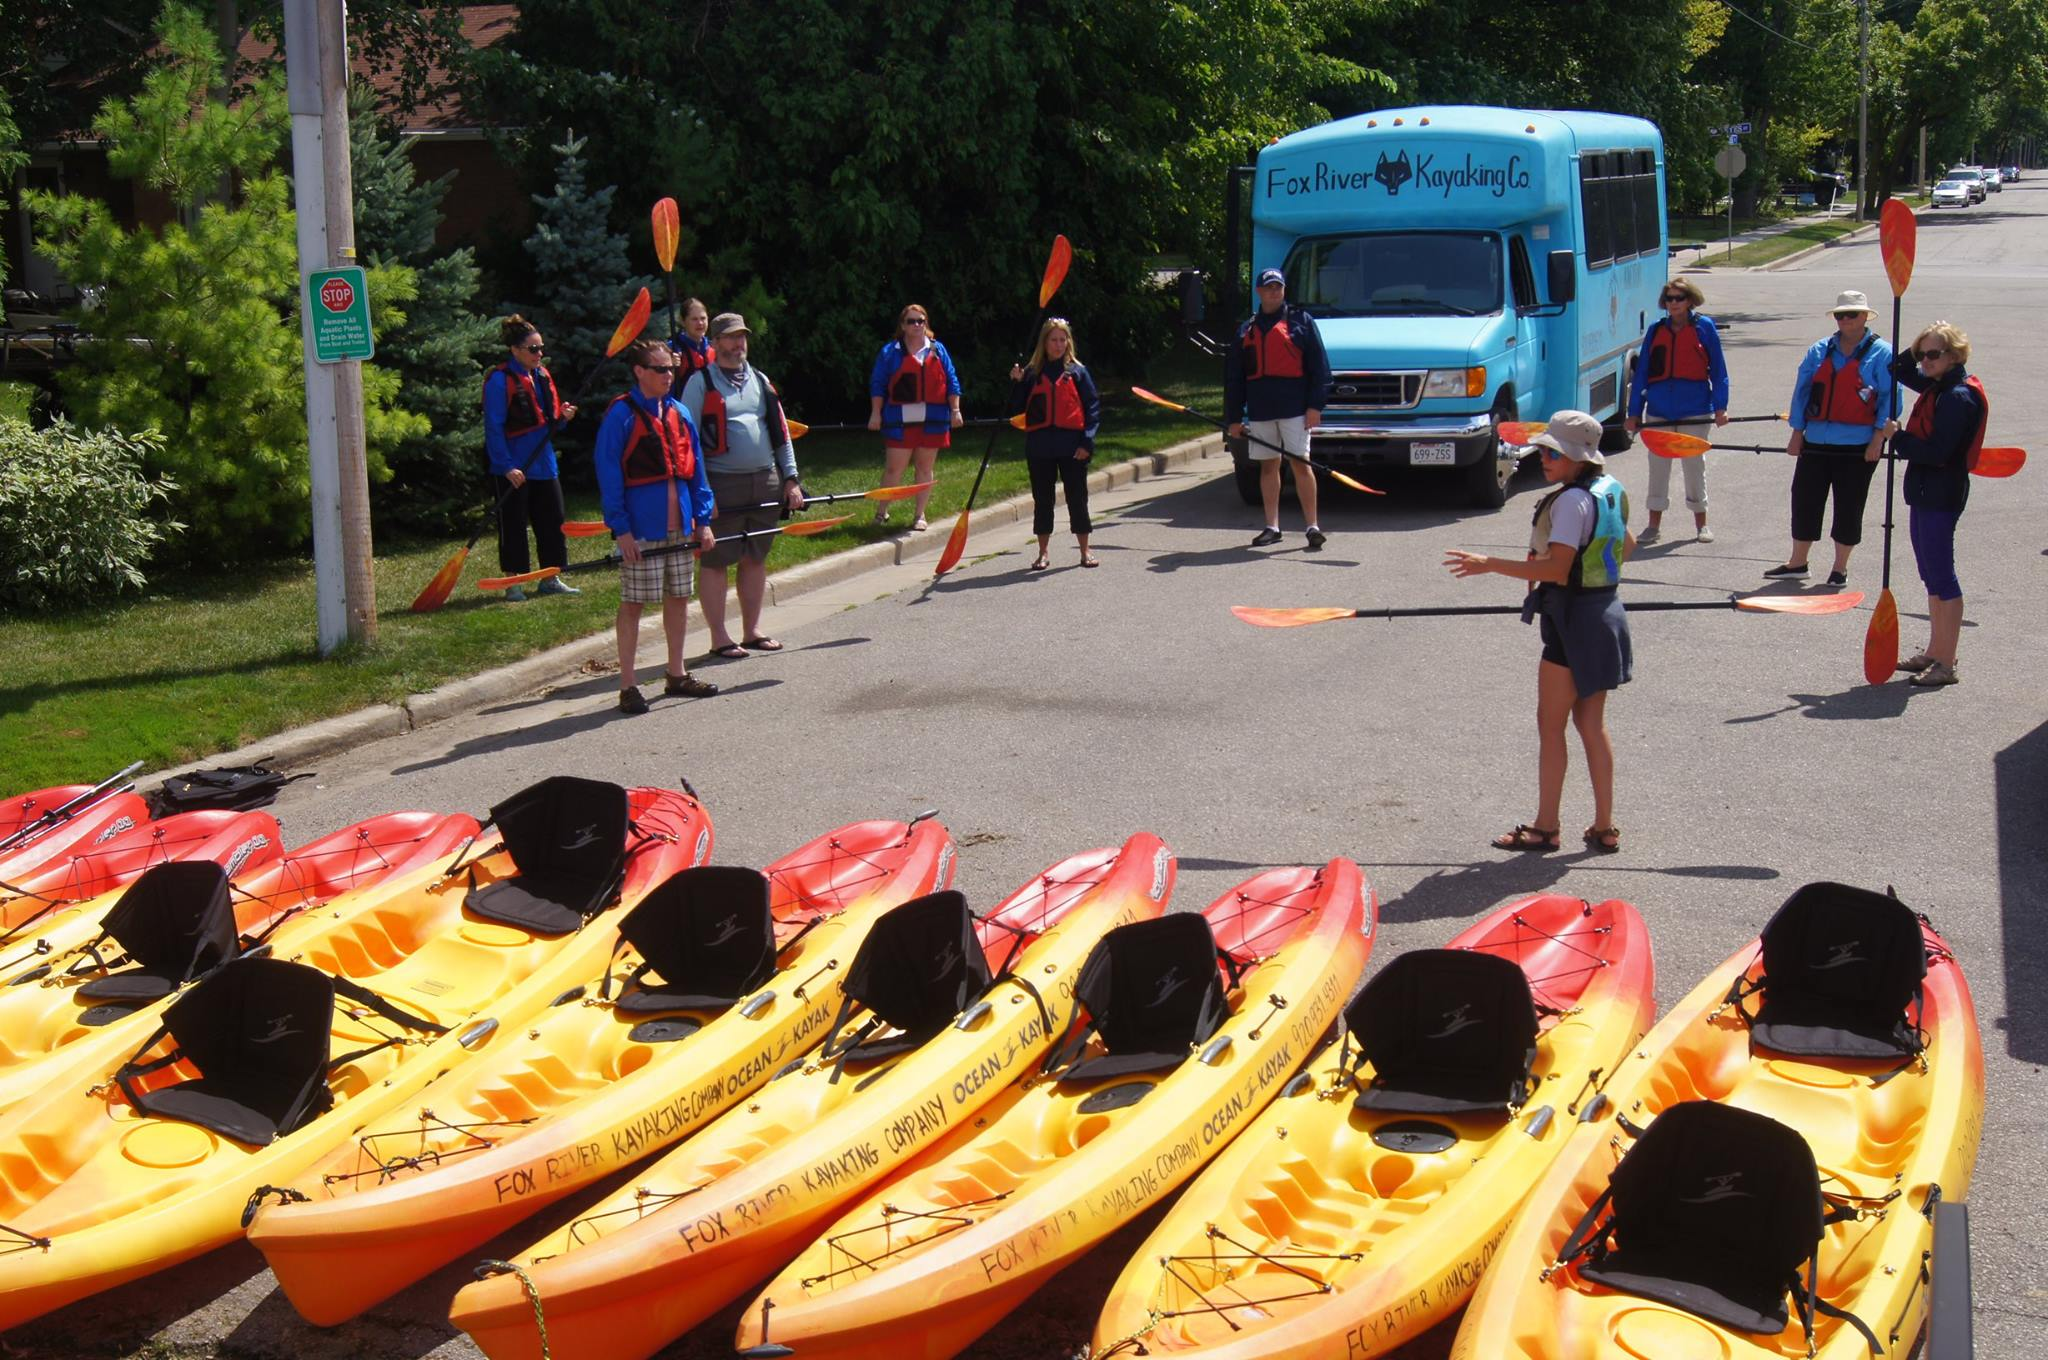 Doty Island Paddle - Fox River Kayaking Company